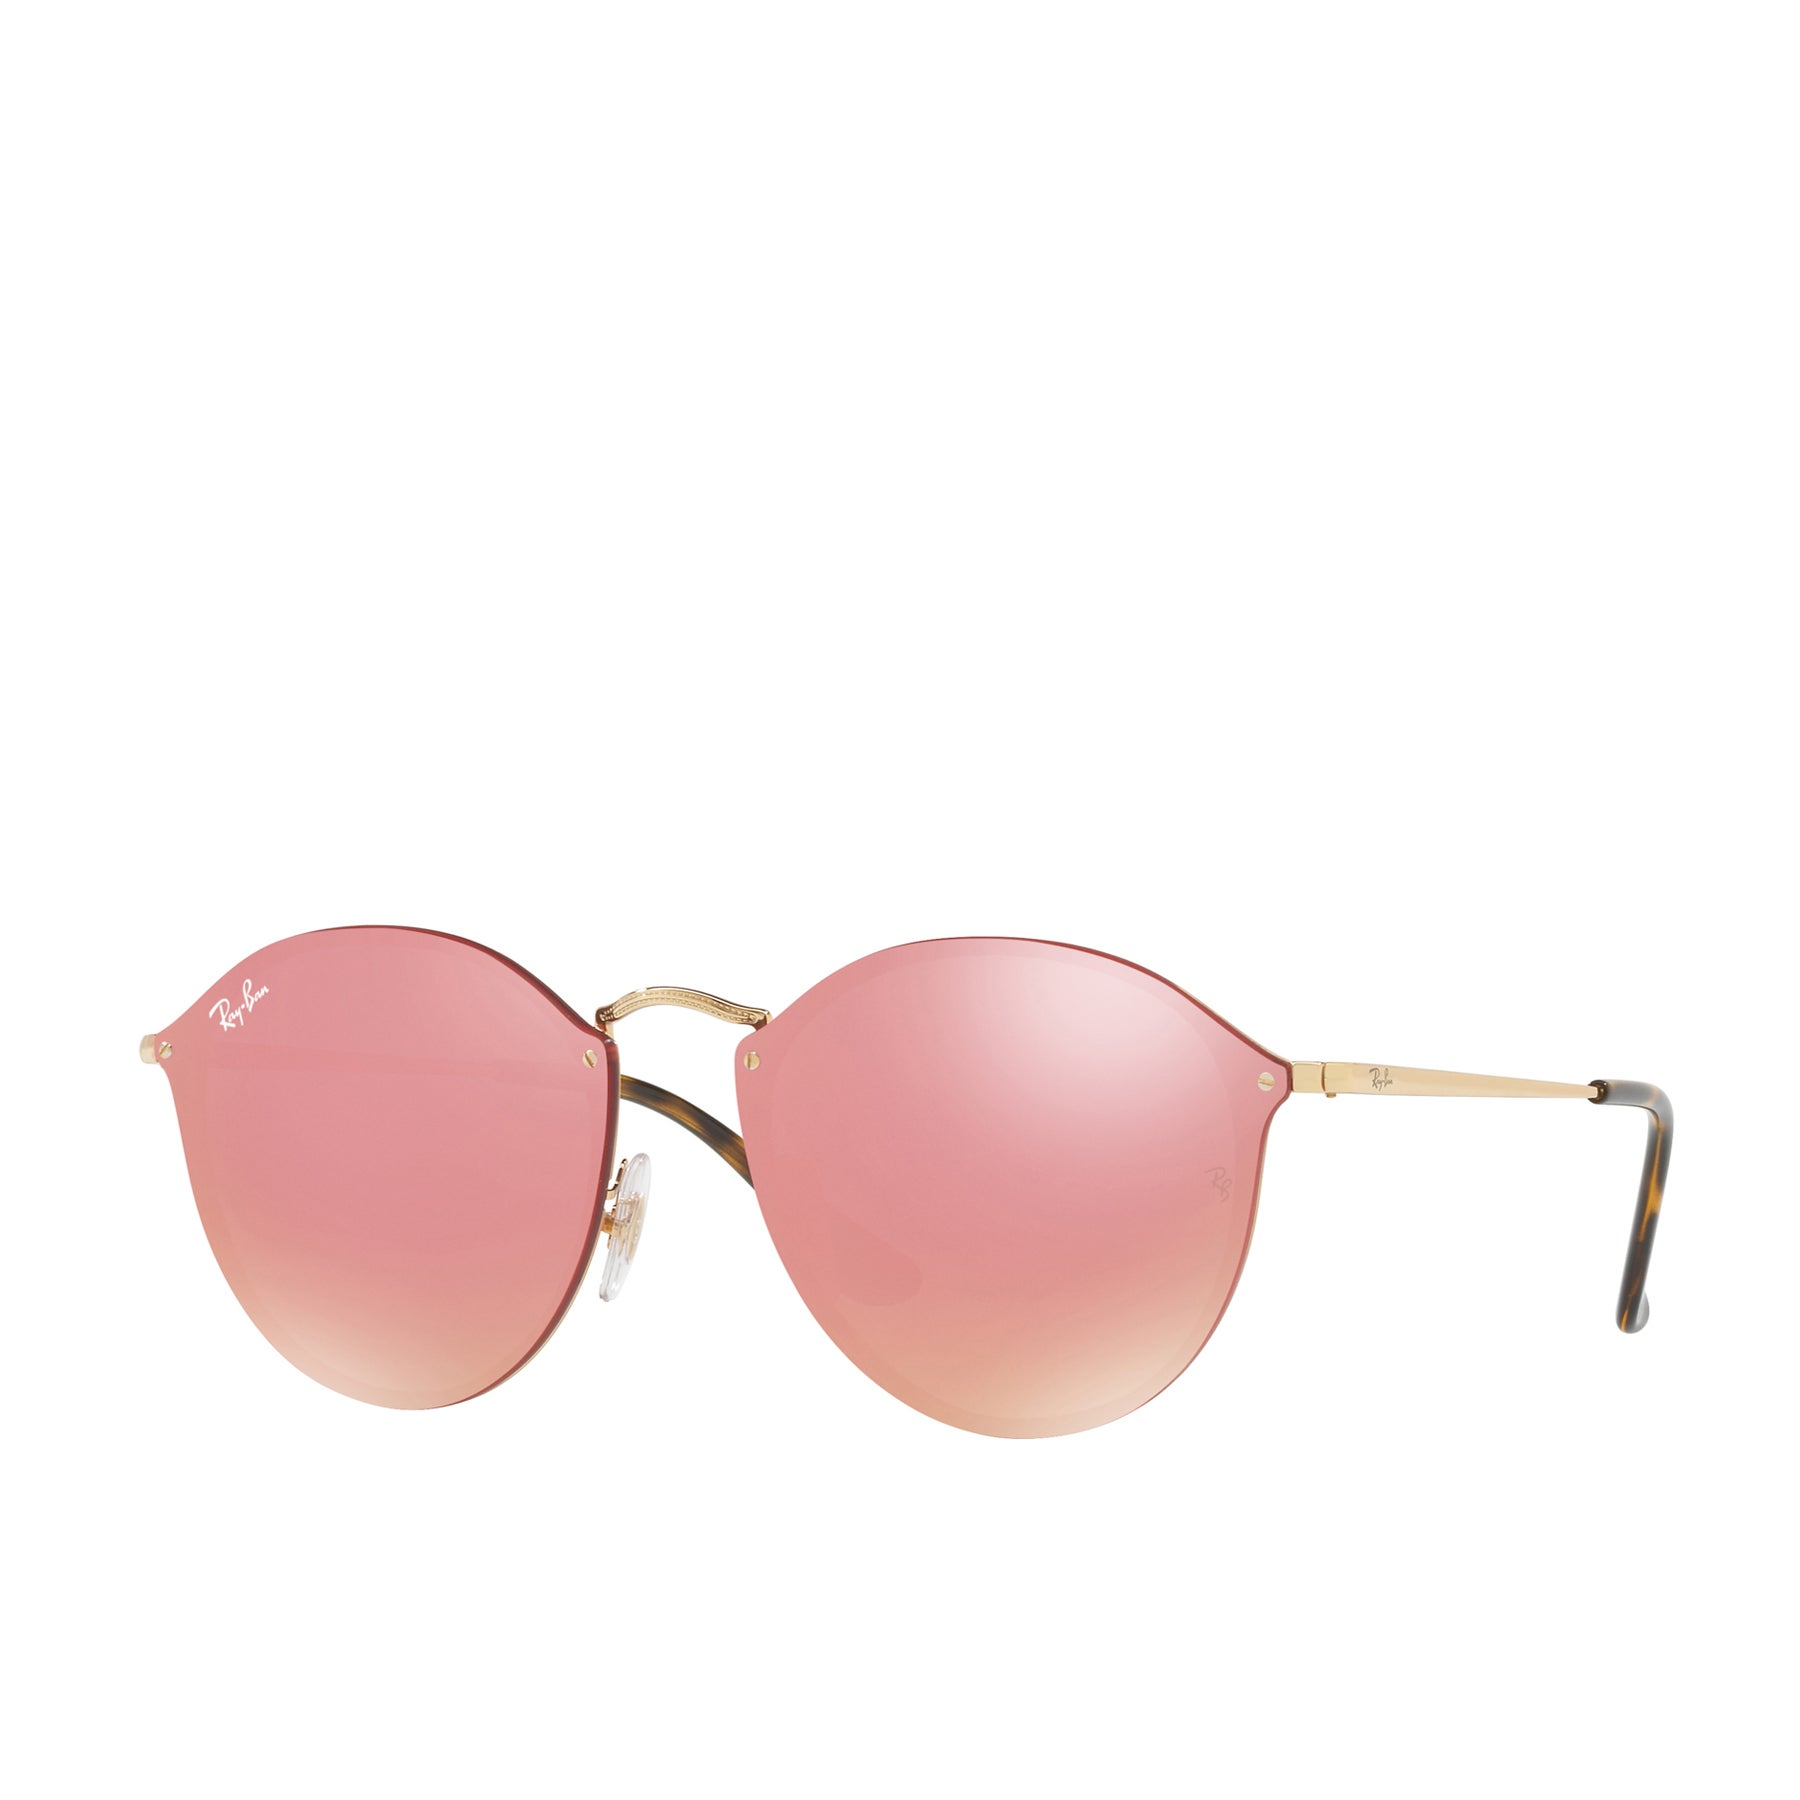 Ray-Ban Blaze Round Womens Sunglasses - Gold Pink Mirror